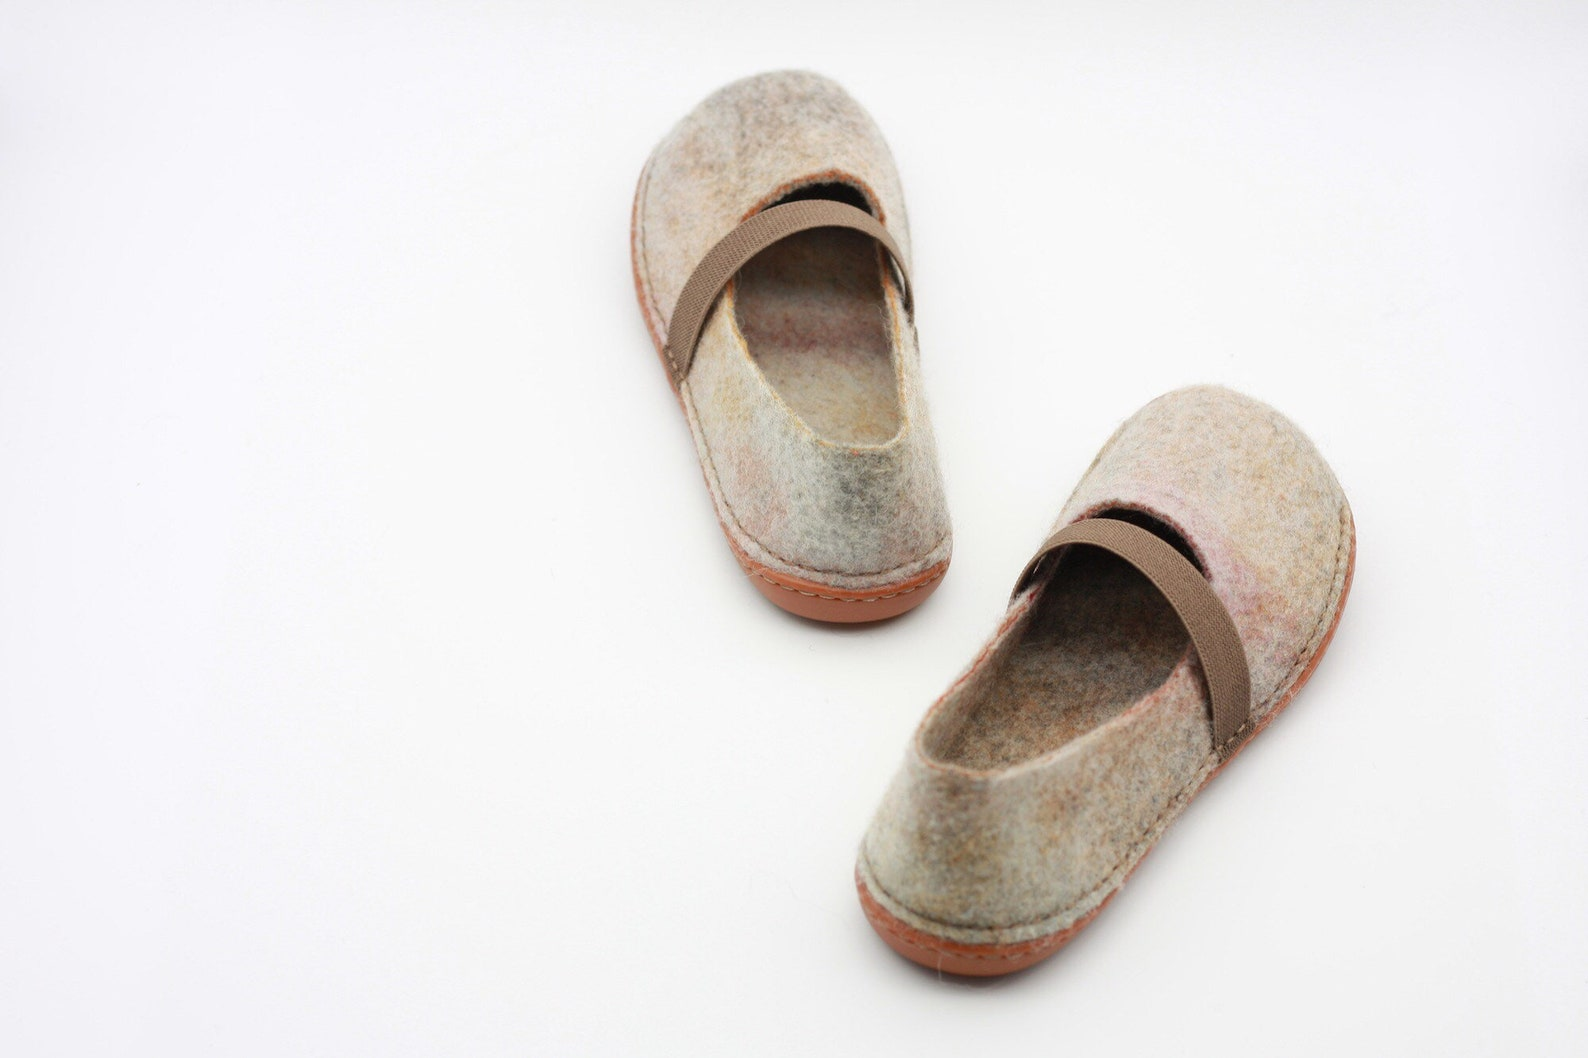 lucielalune /eu39 us8.5 uk6 / women's flat ballet shoes / spring autumn / handmade felted merino wool slippers / slip on sho